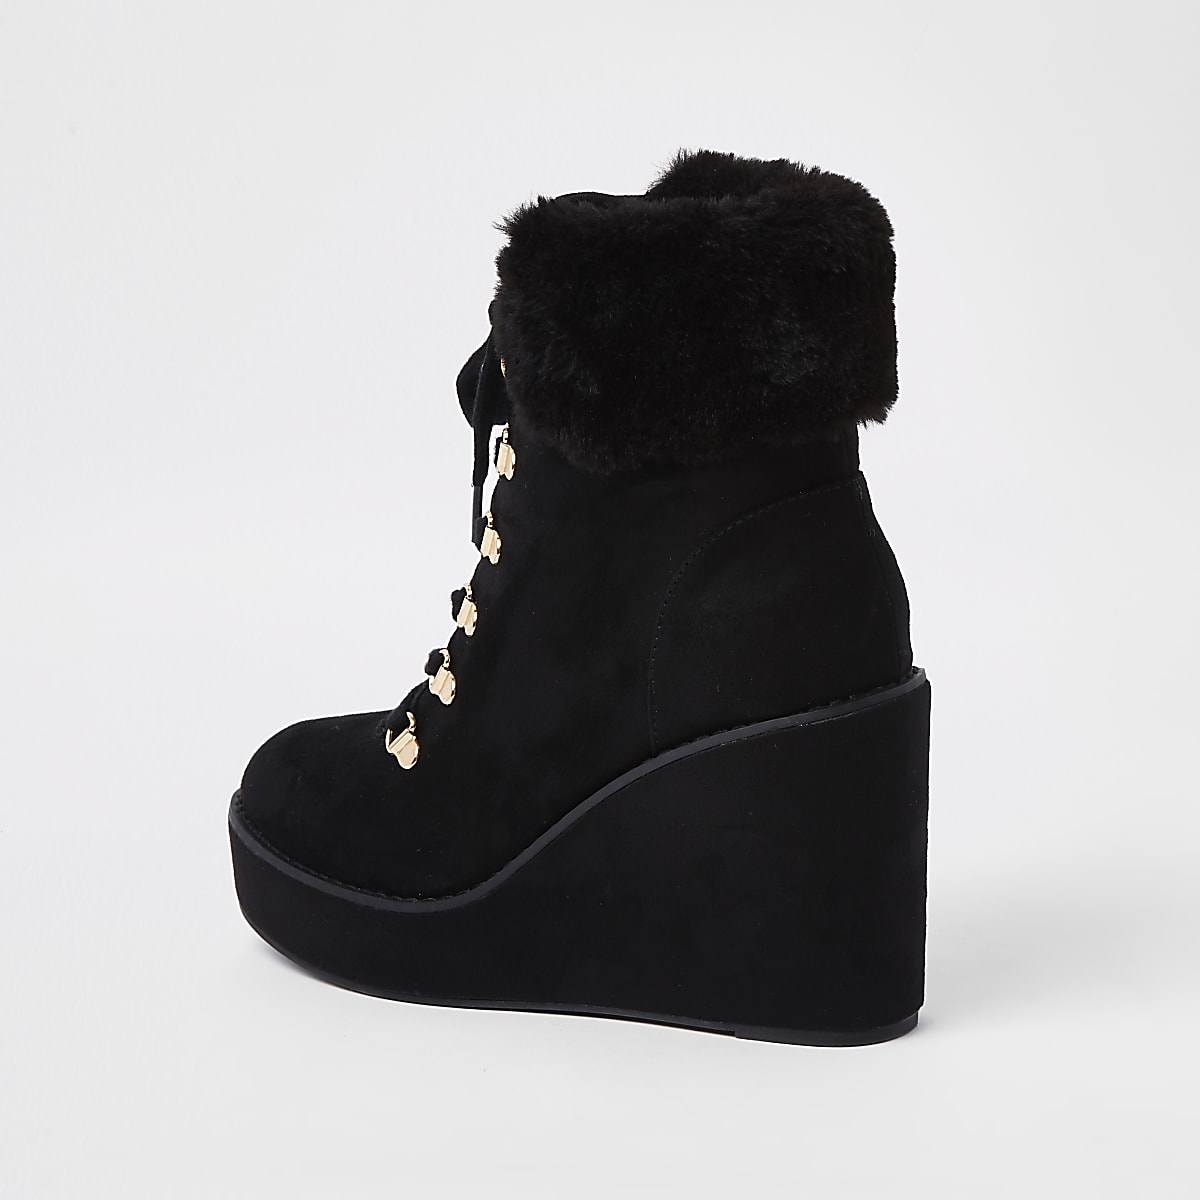 9820e4ba2ac Black lace-up wedge heel boots - Boots - Shoes   Boots - women